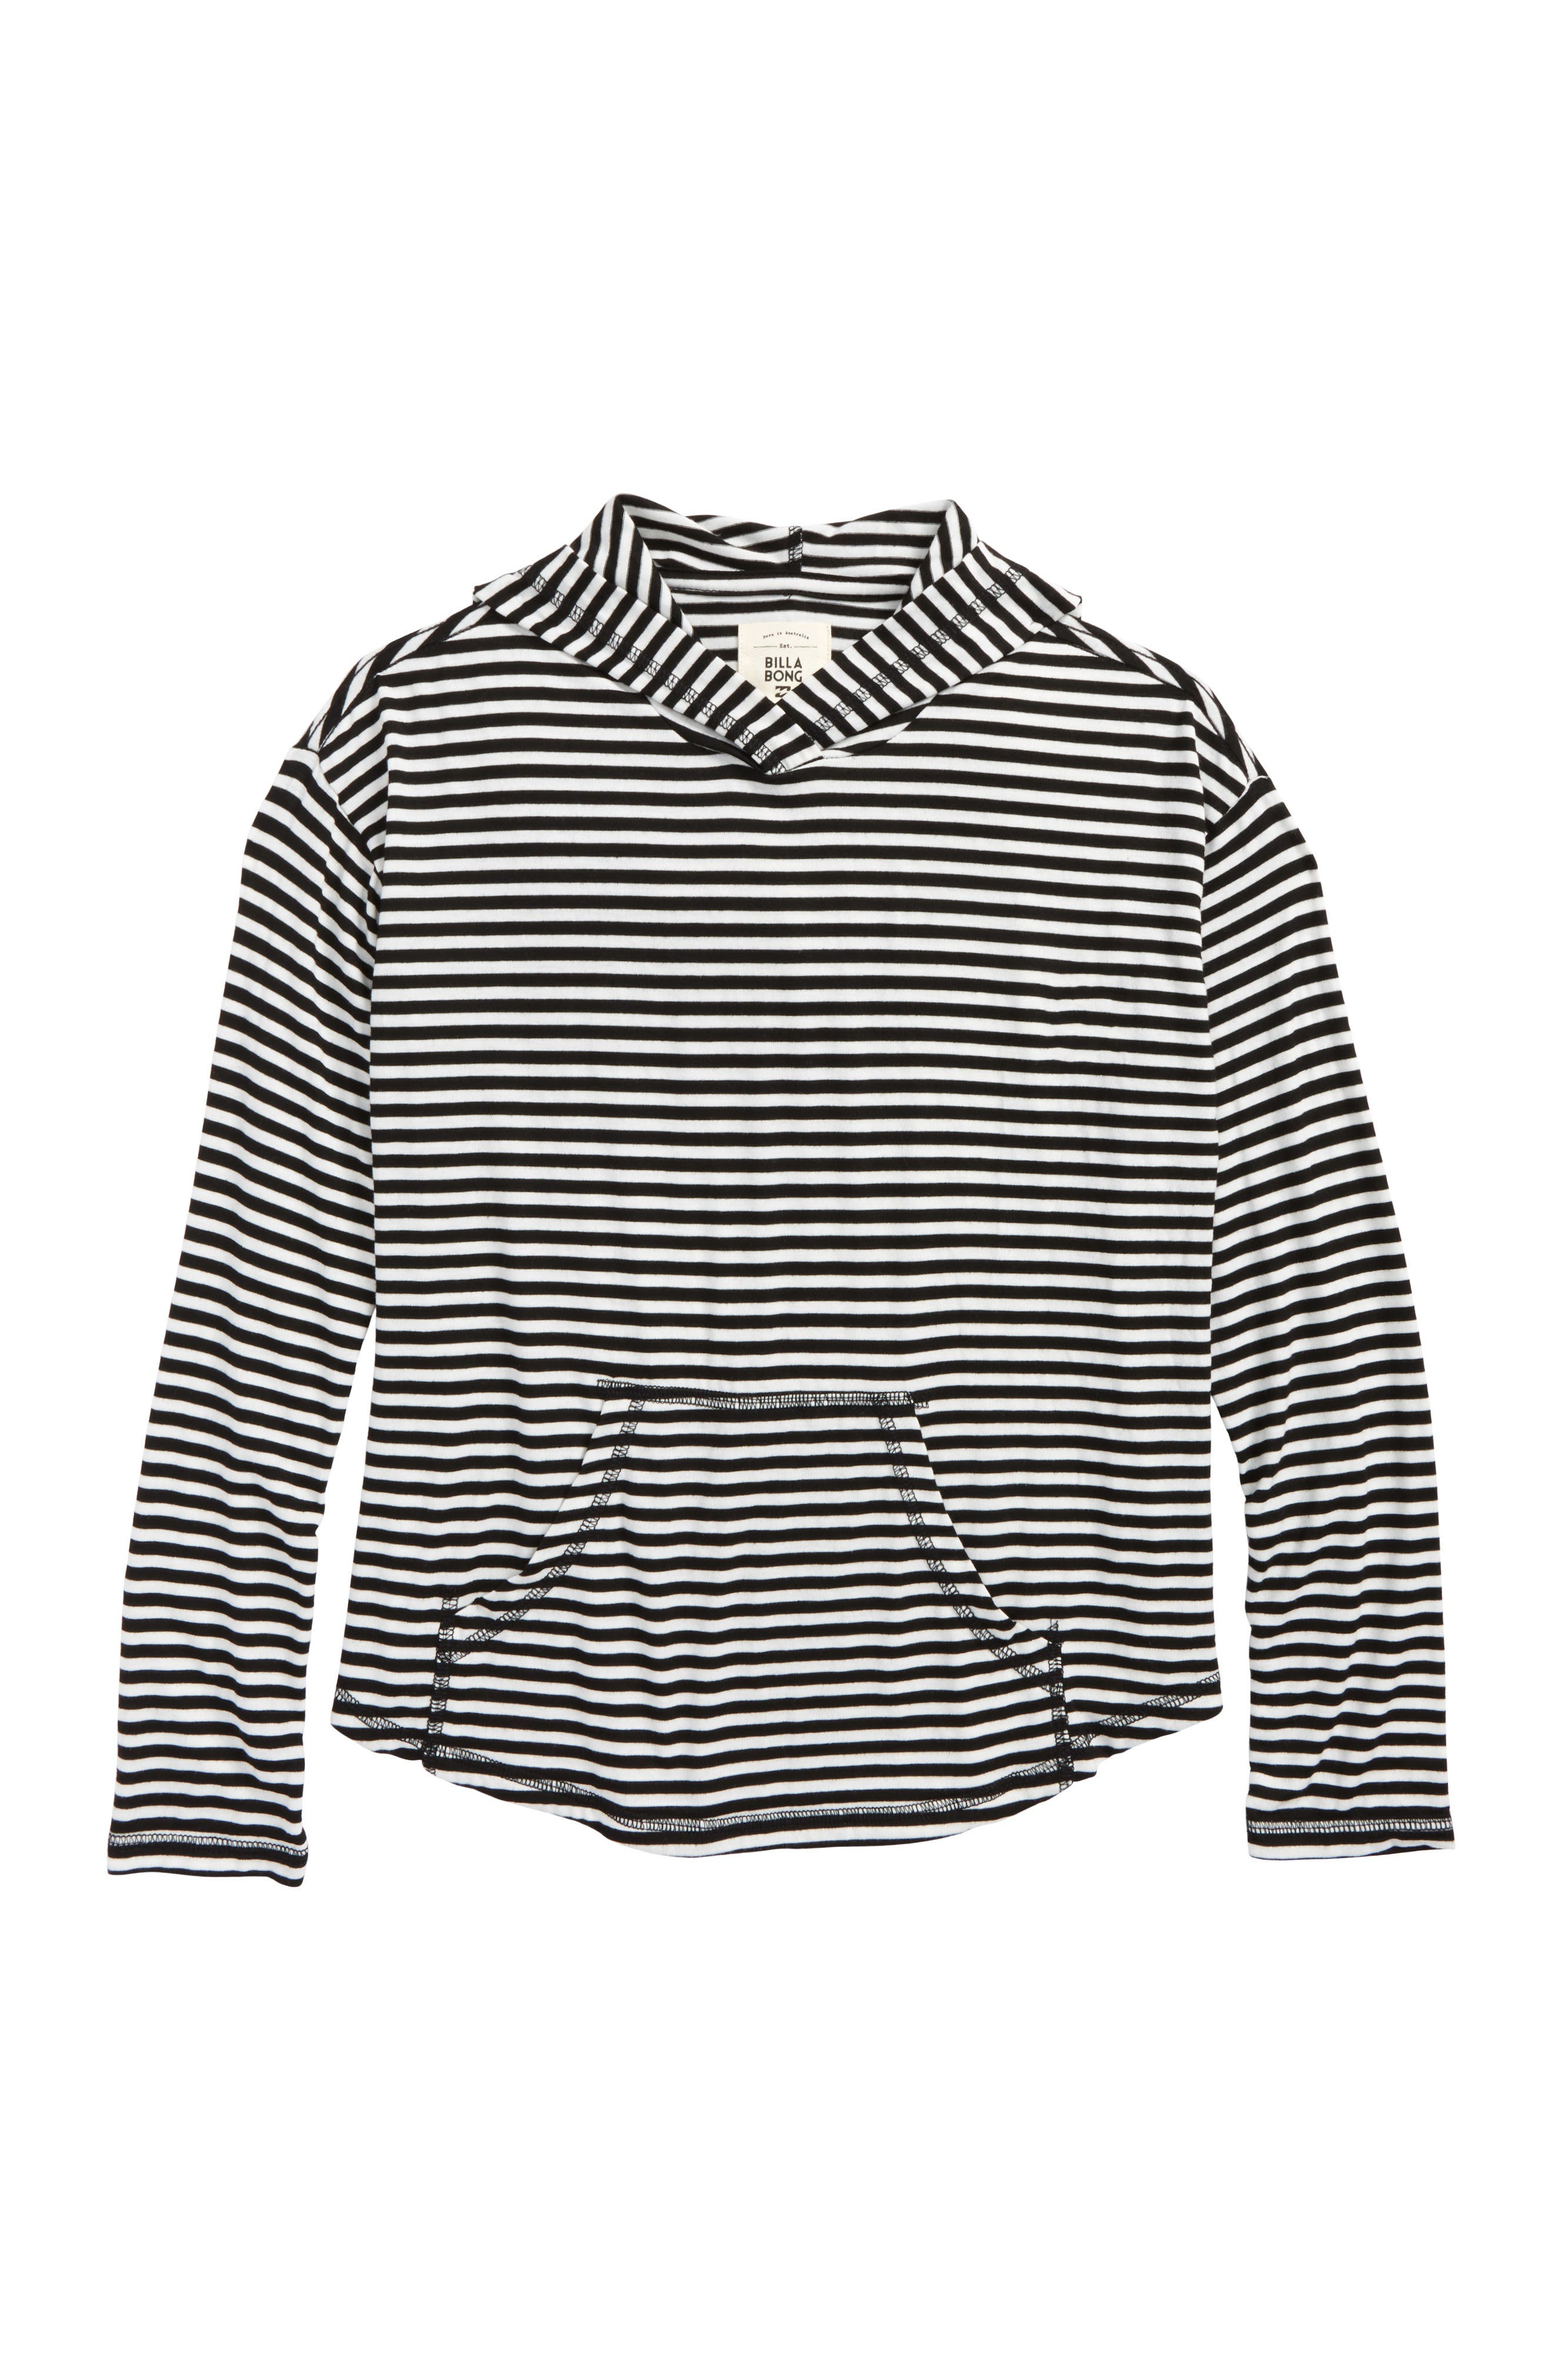 These Days Stripe Hoodie,                             Main thumbnail 1, color,                             002